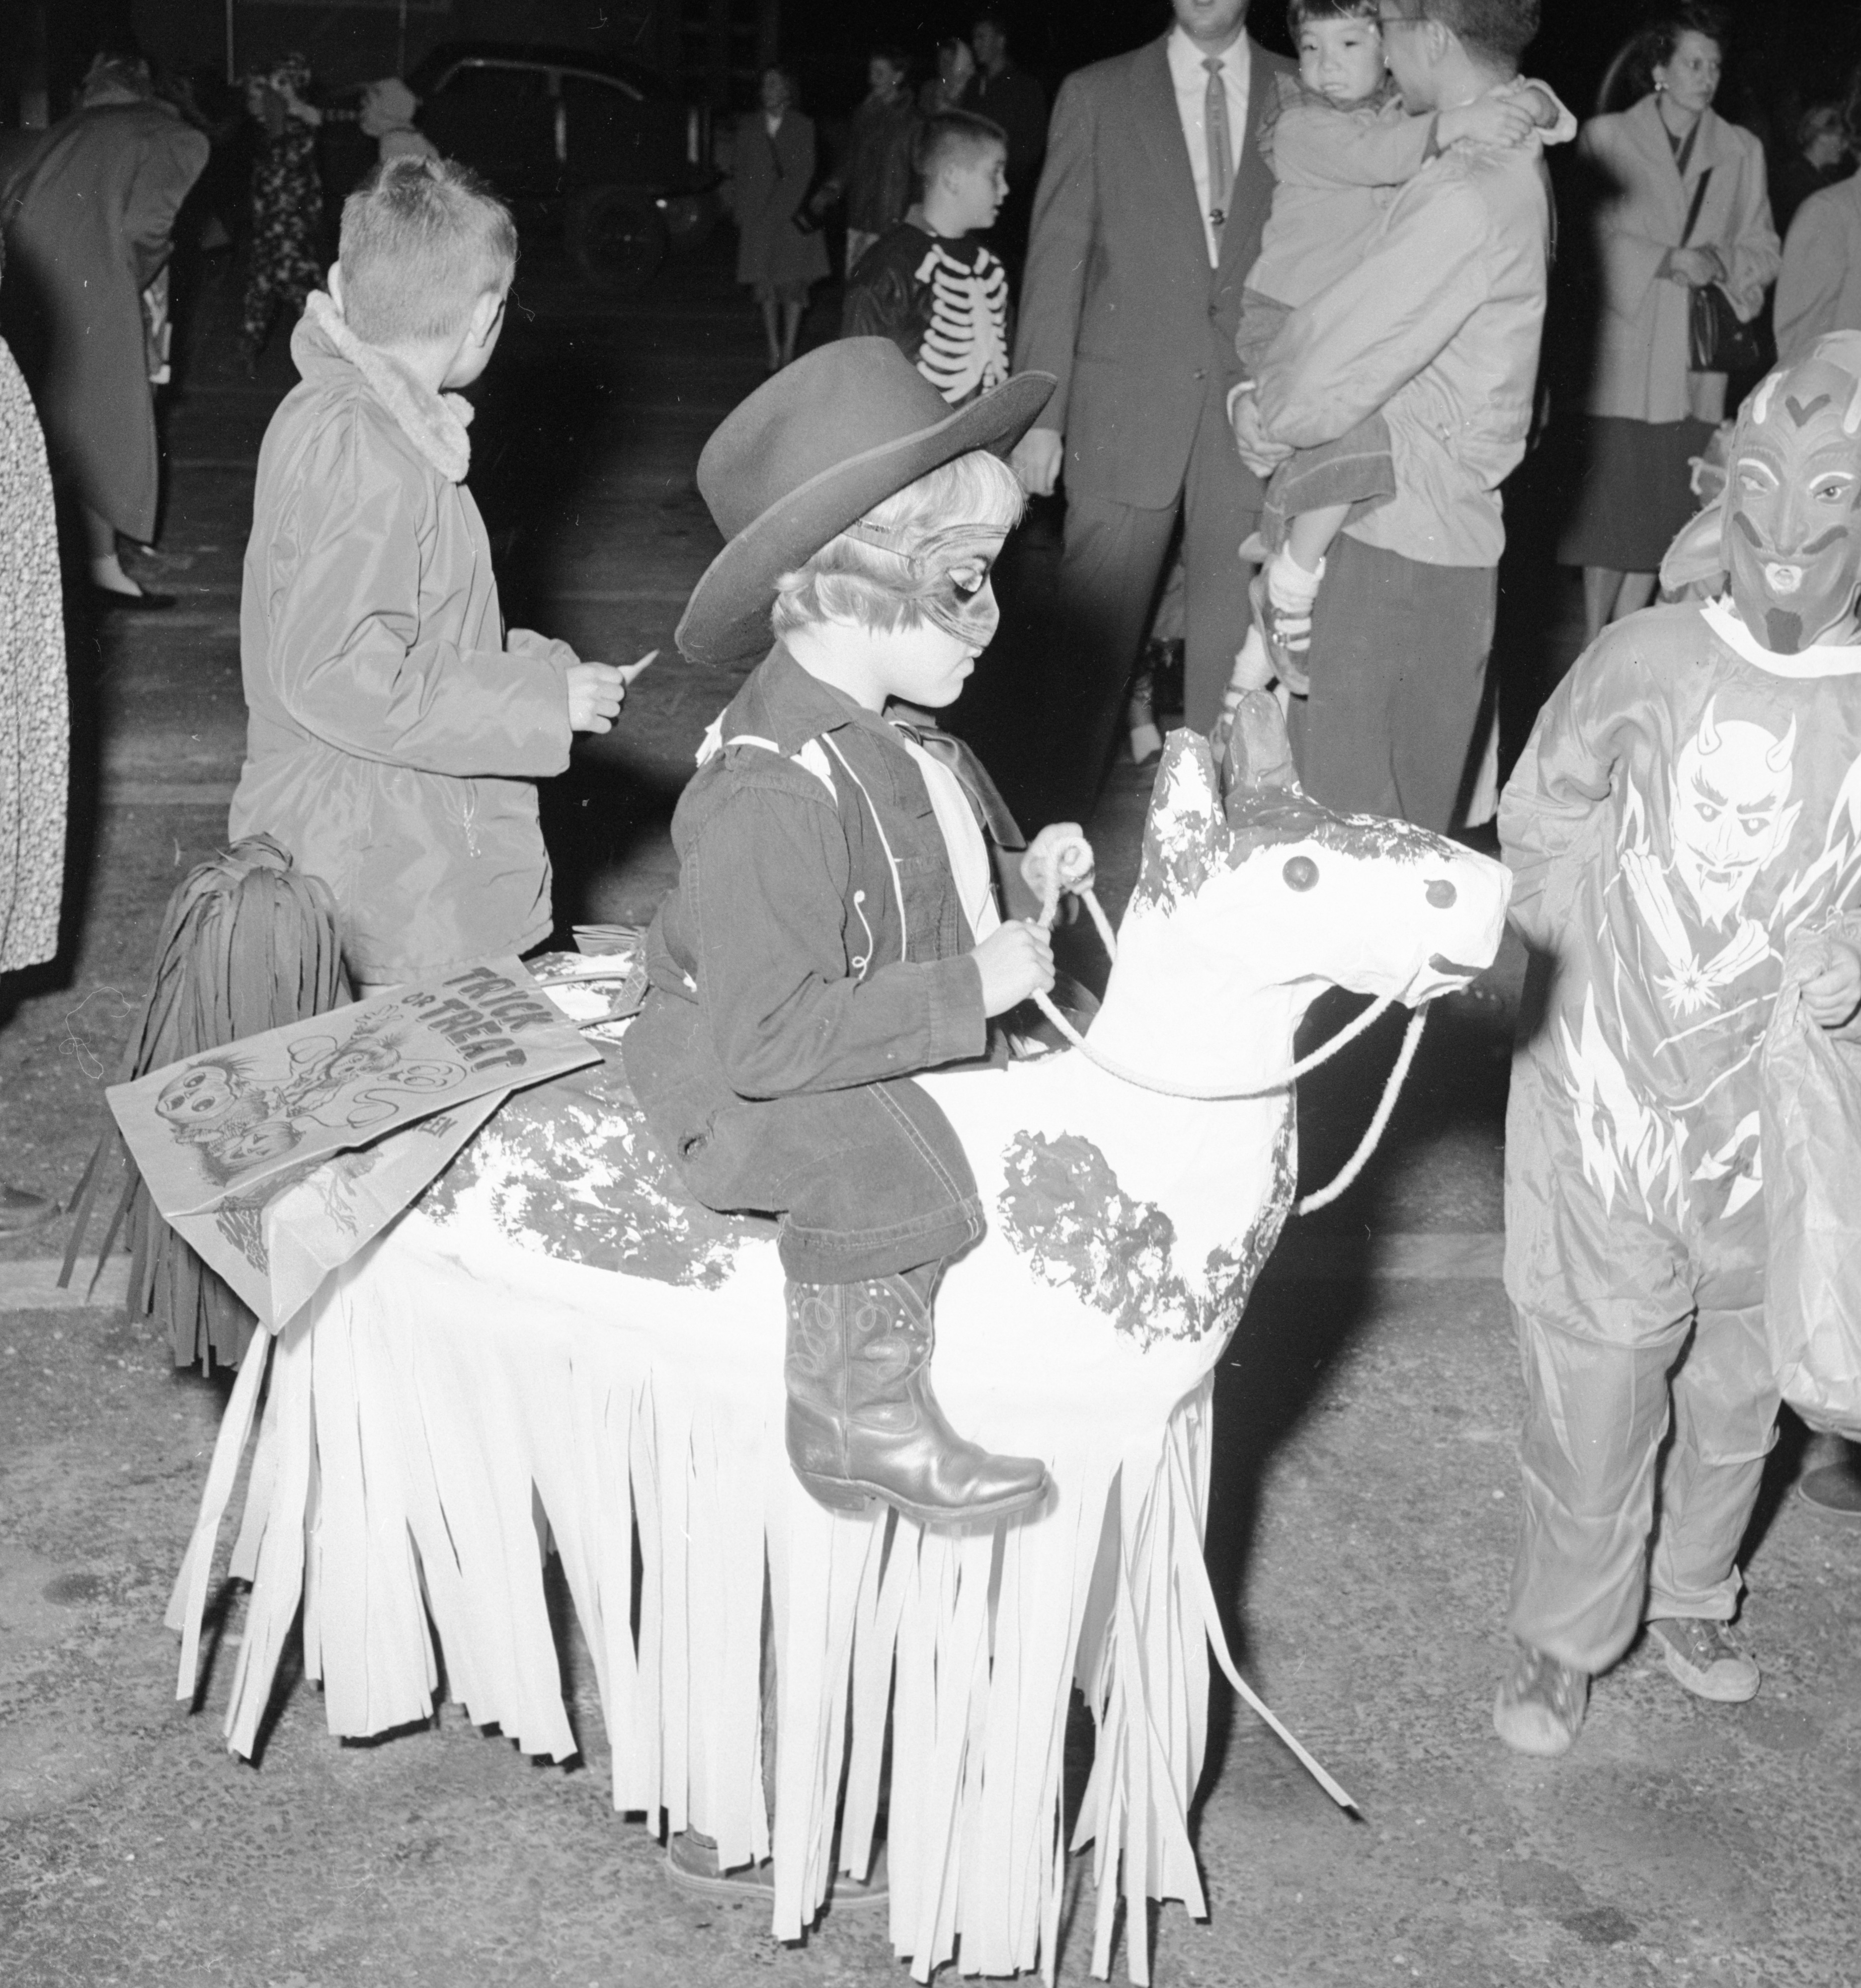 Girl On Horse at JCC Halloween Party, October 1955 | Old News